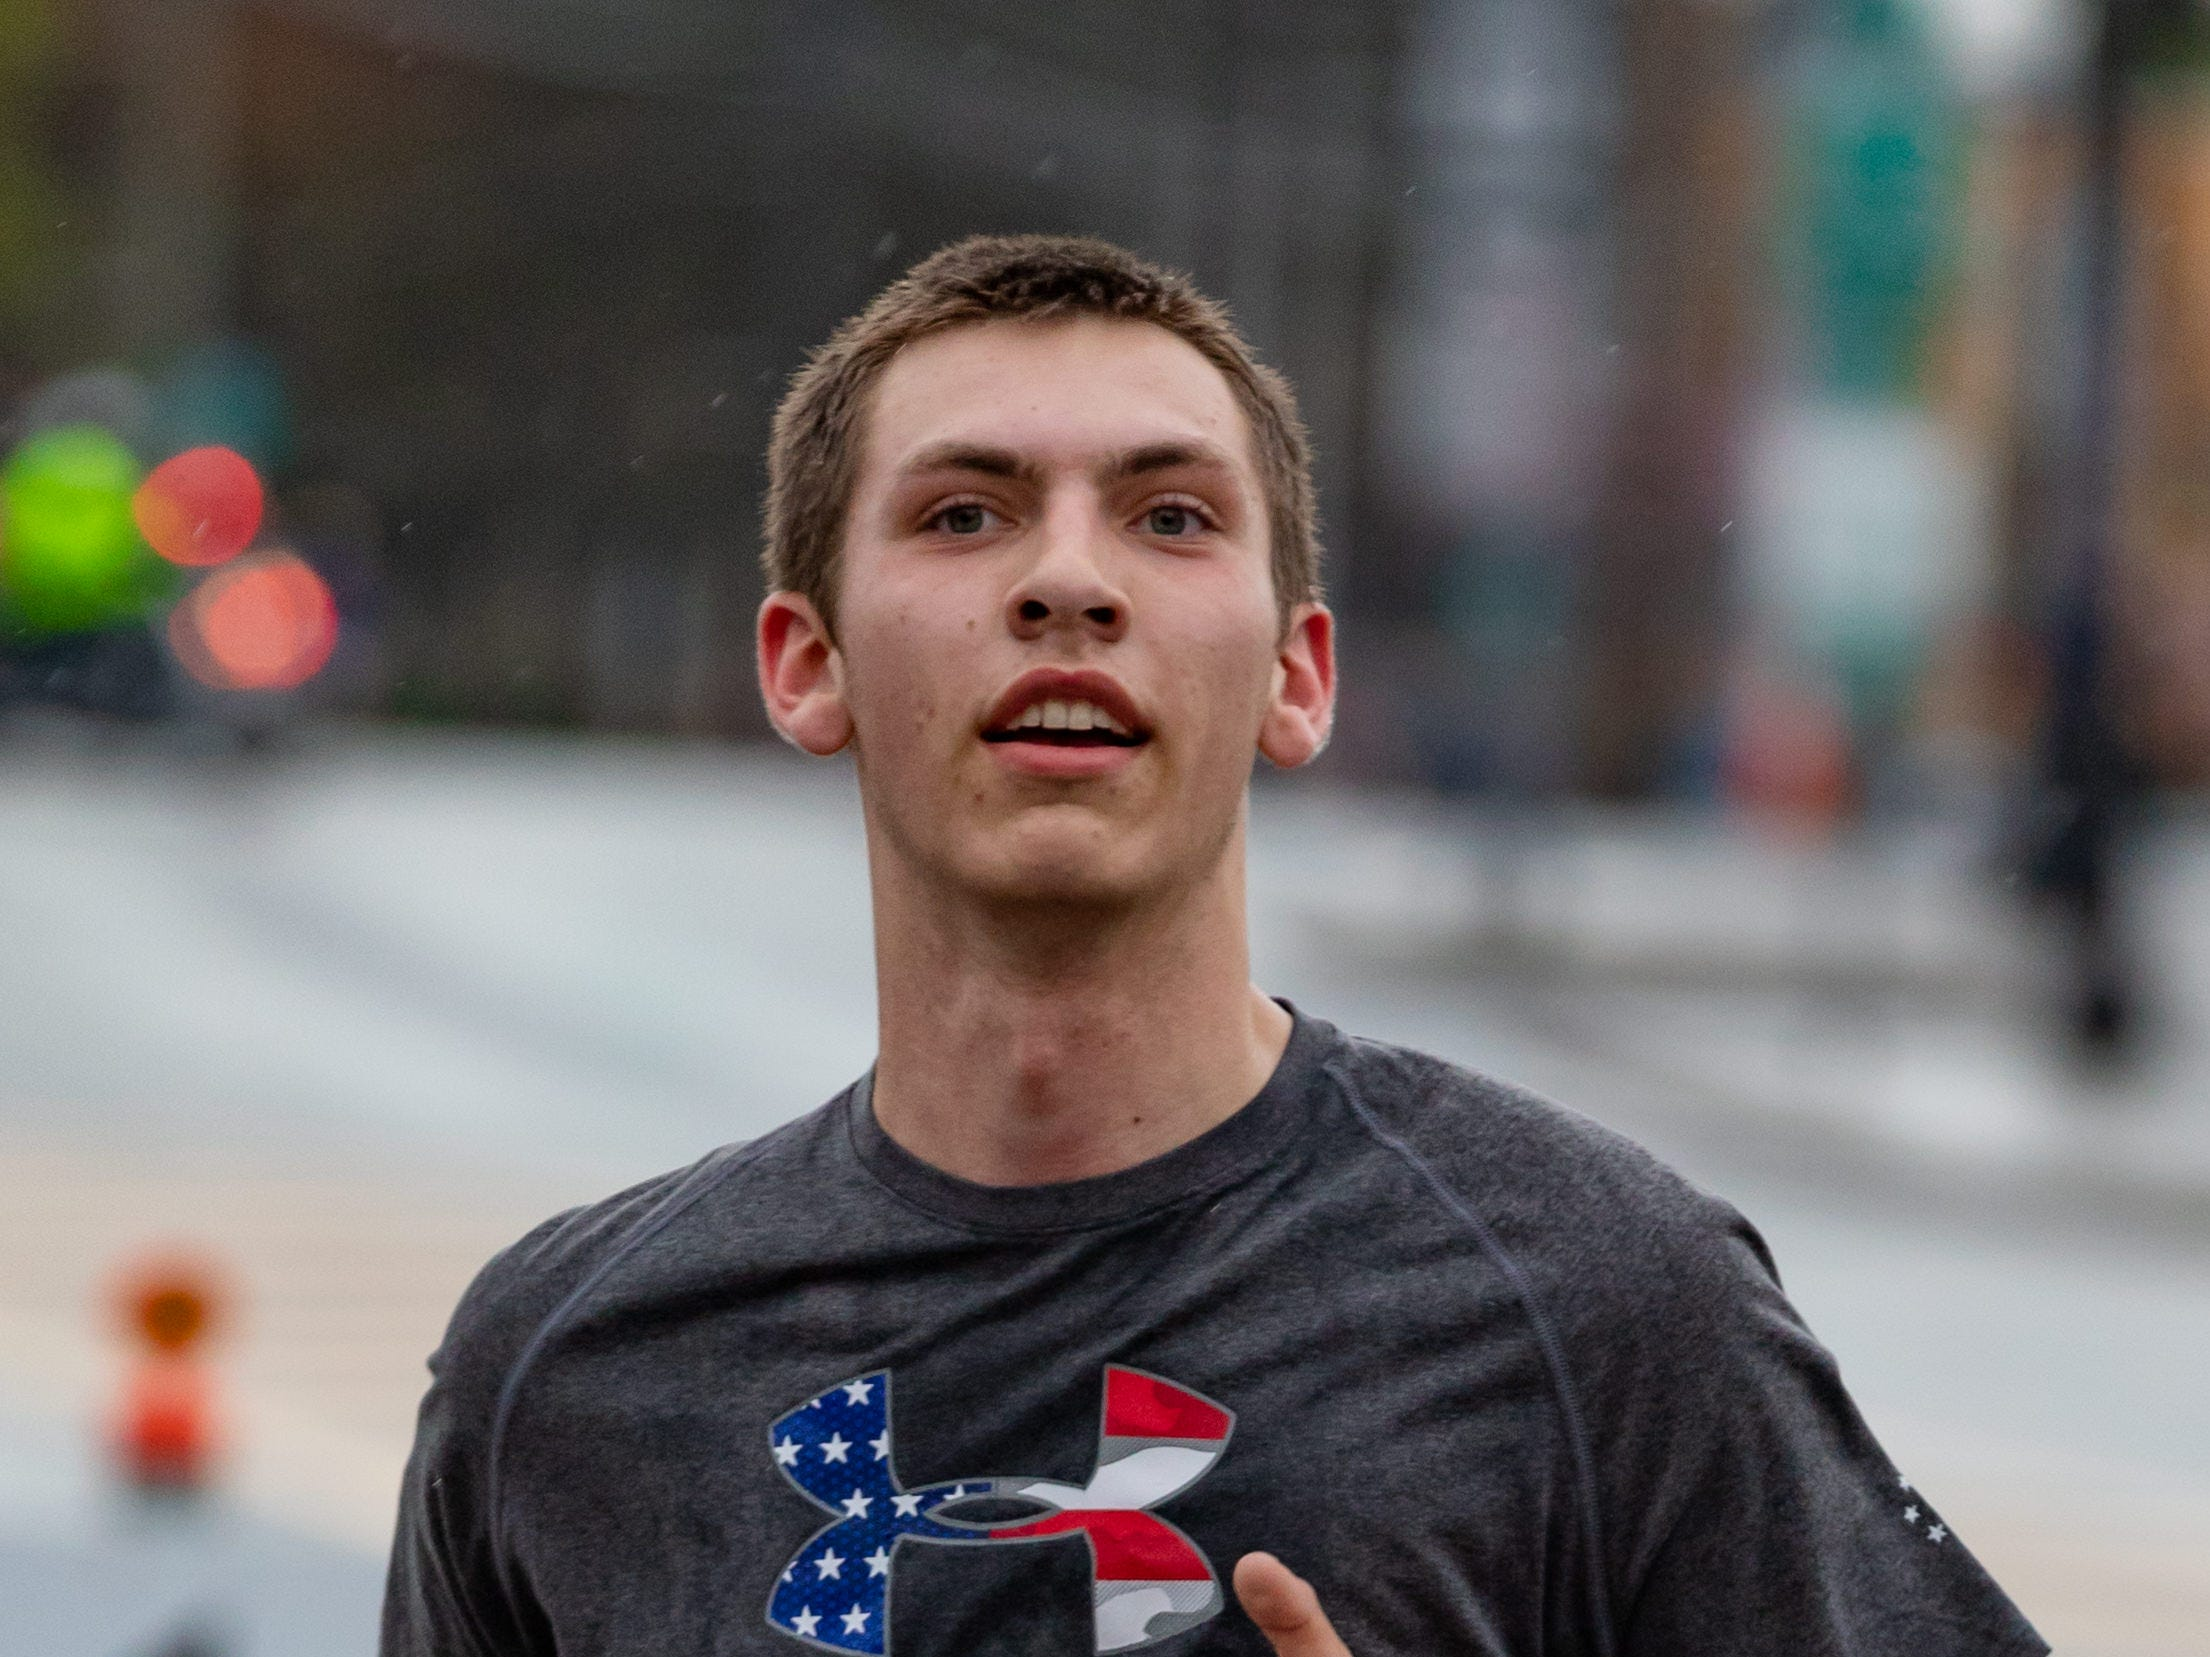 2018: Chenango Valley High School Senior Jackson Retzlaff turned in a 8:09 pace on the way to the finish line at the Binghamton Bridge Run Half Marathon.